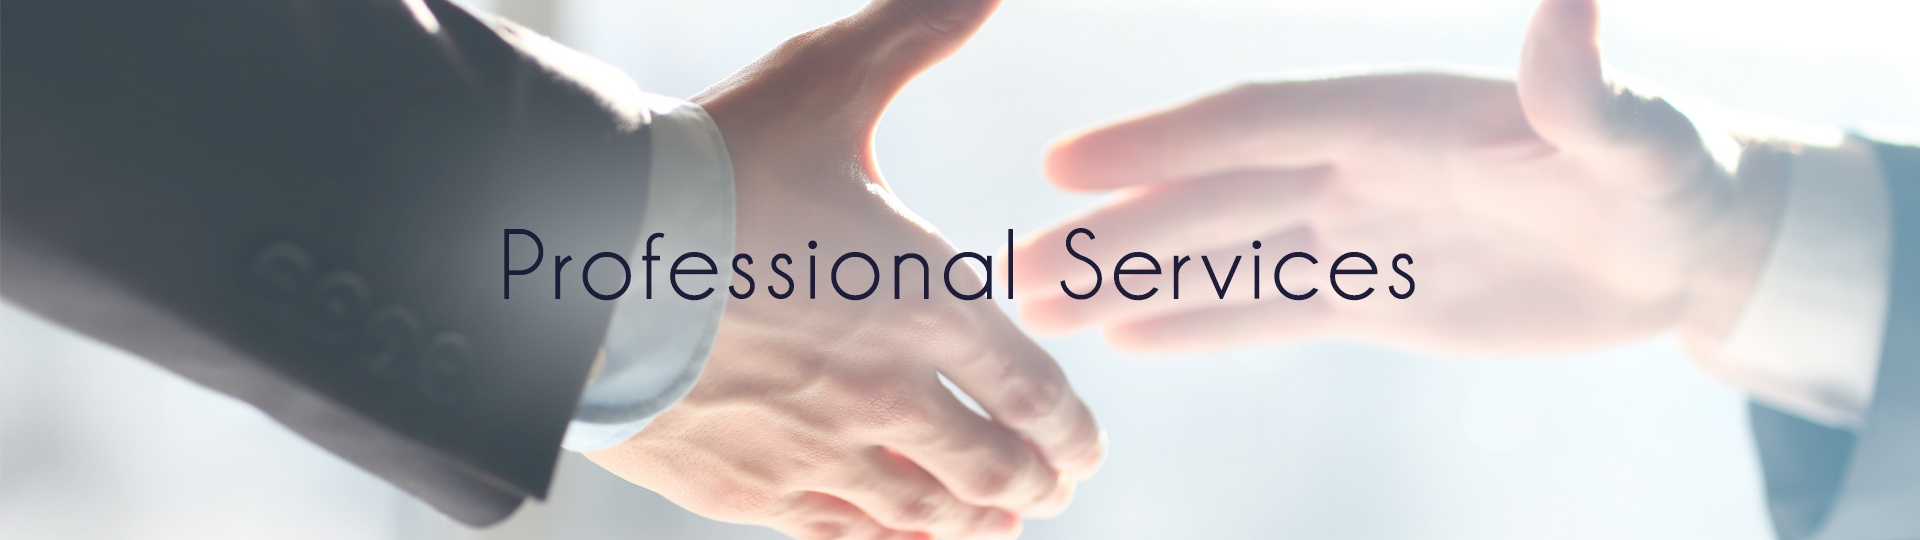 VIManager's Professional Services